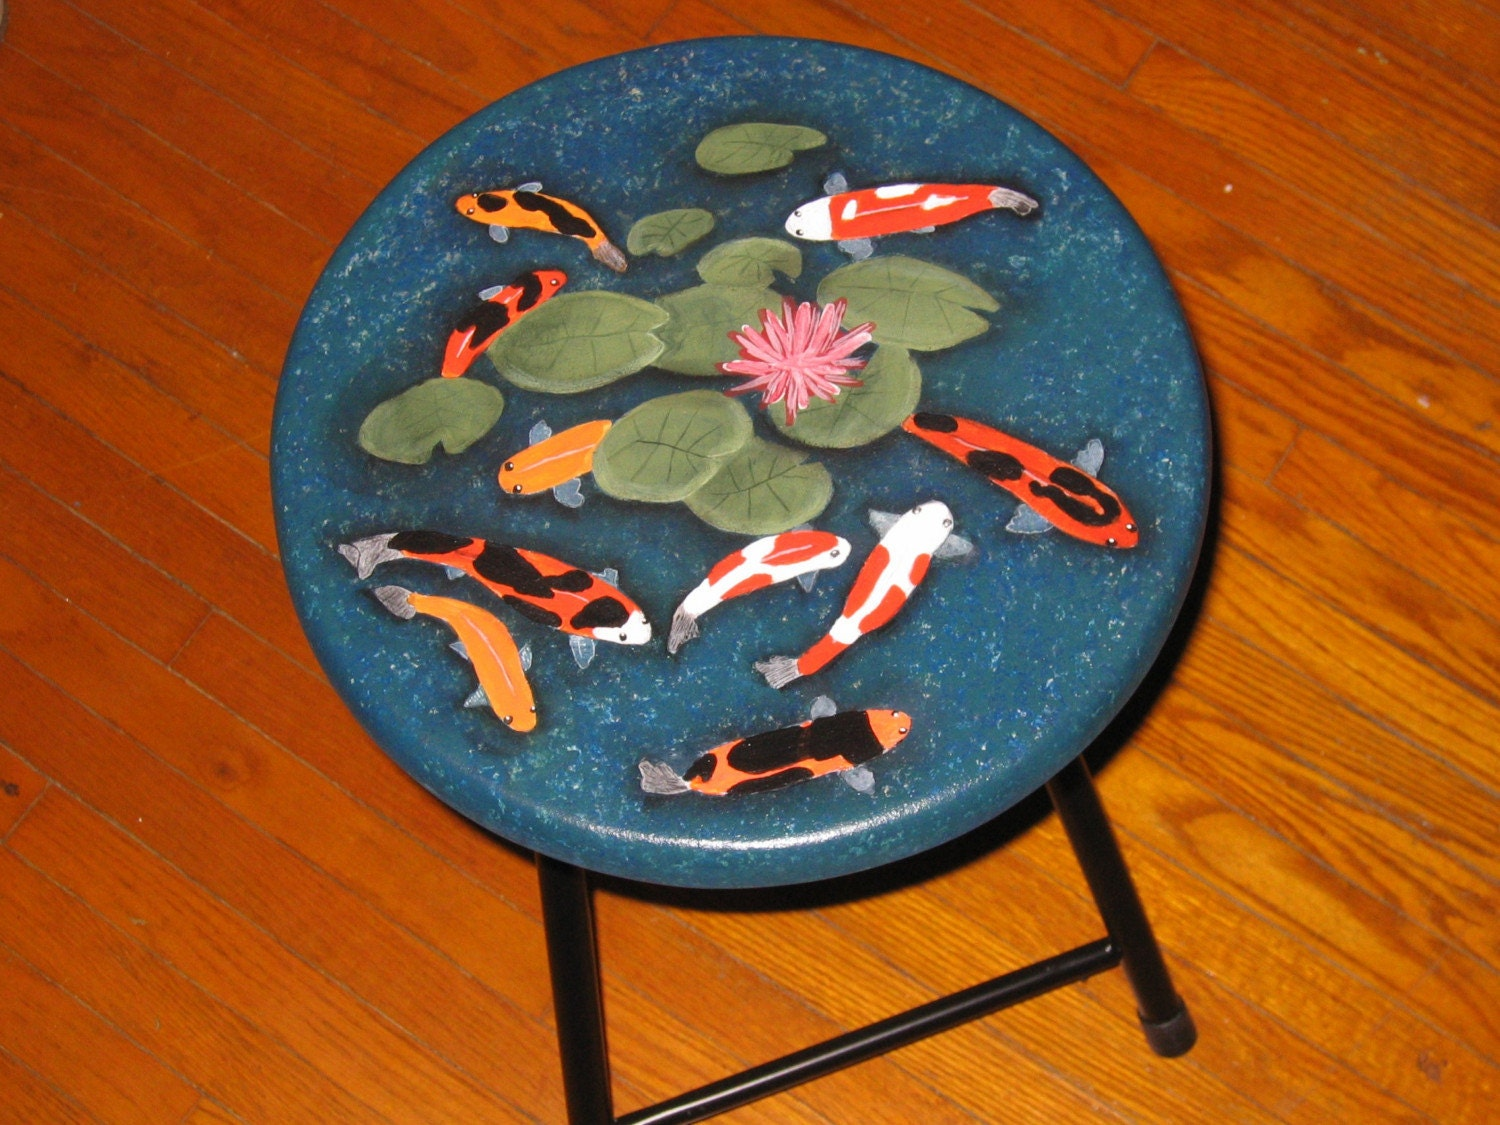 Sale Indoor Koi Fish Pond Painted Stool Mini Table By Fishinthec